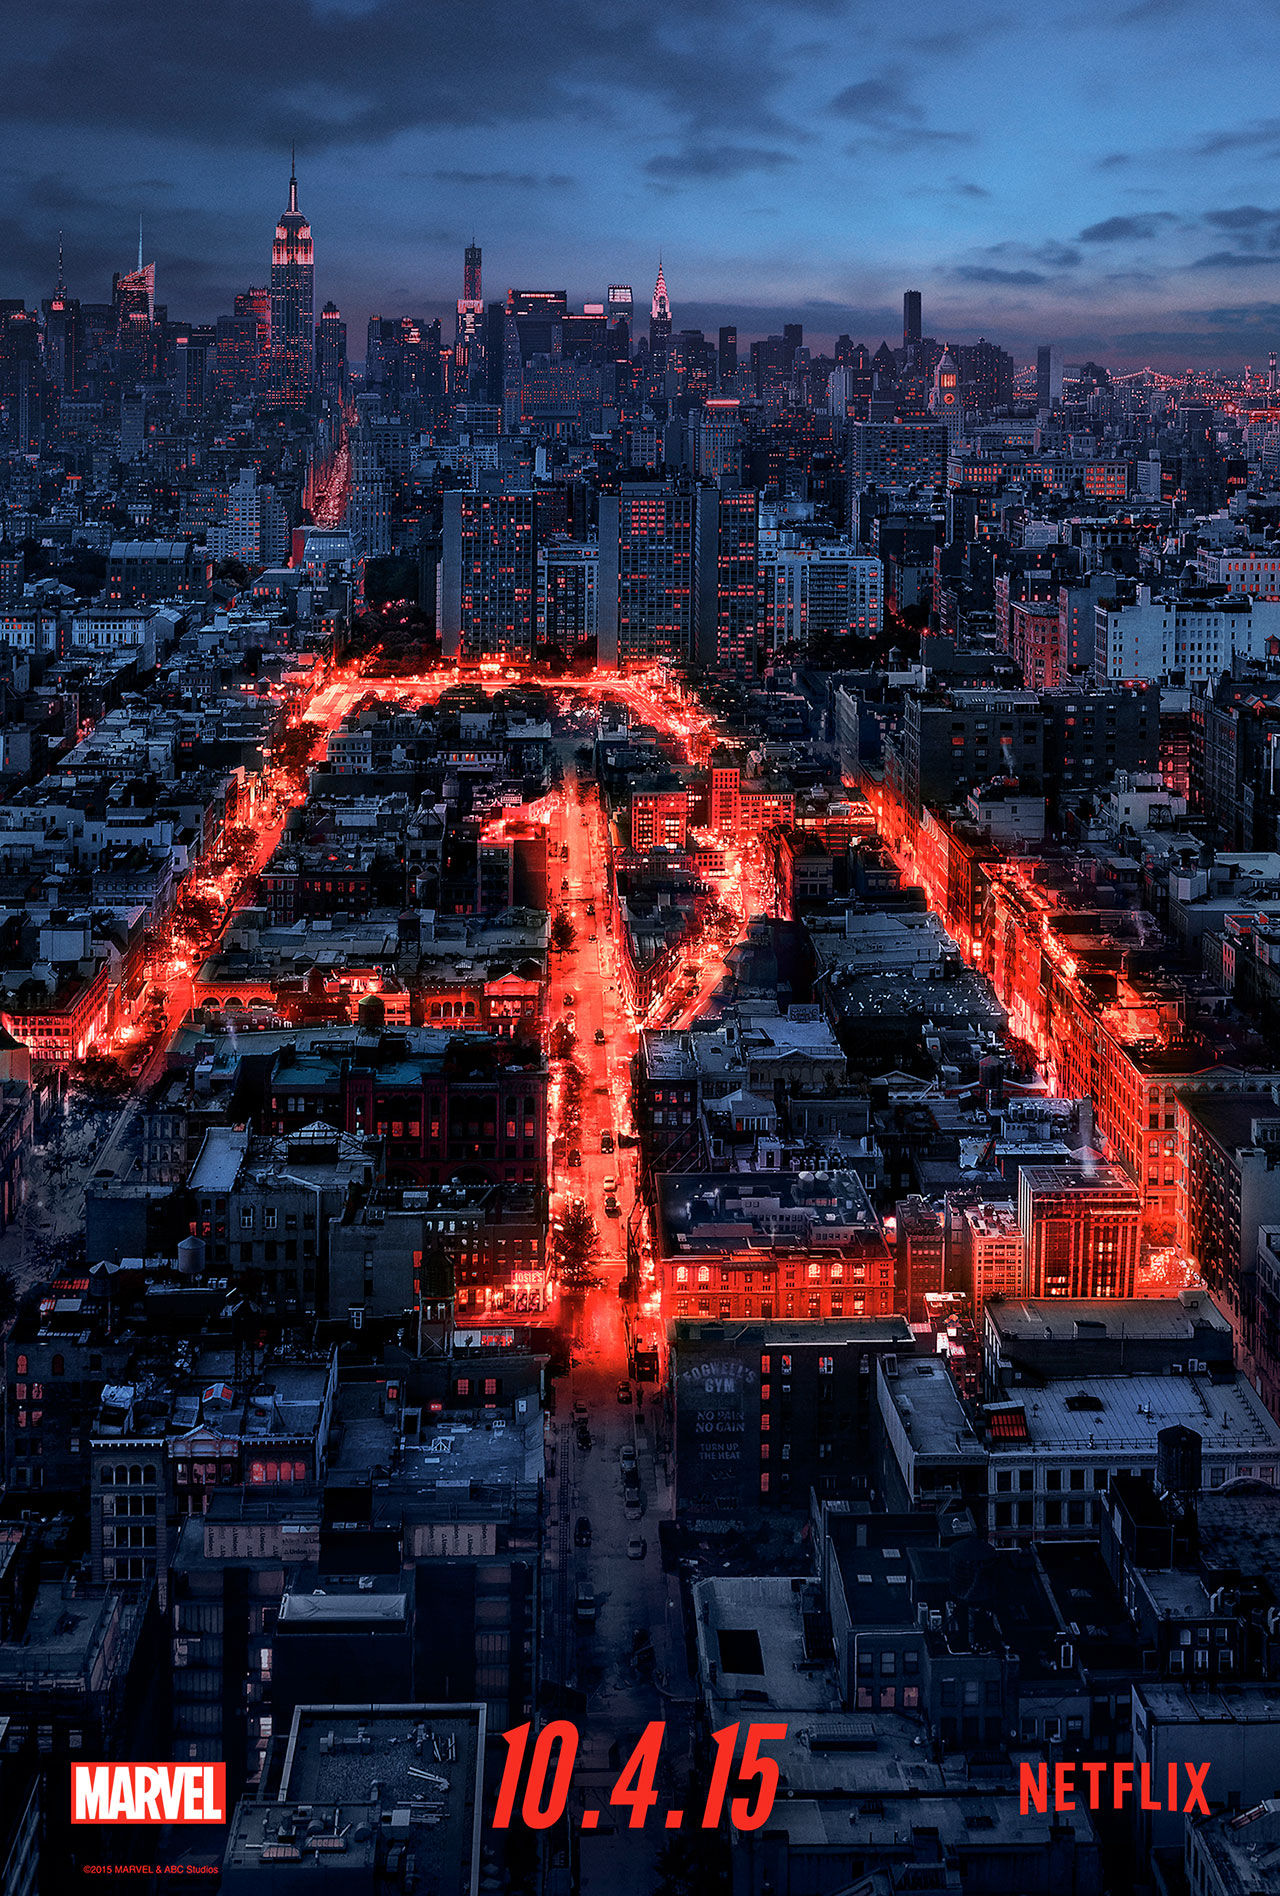 Serien Daredevil har premiär 10 april